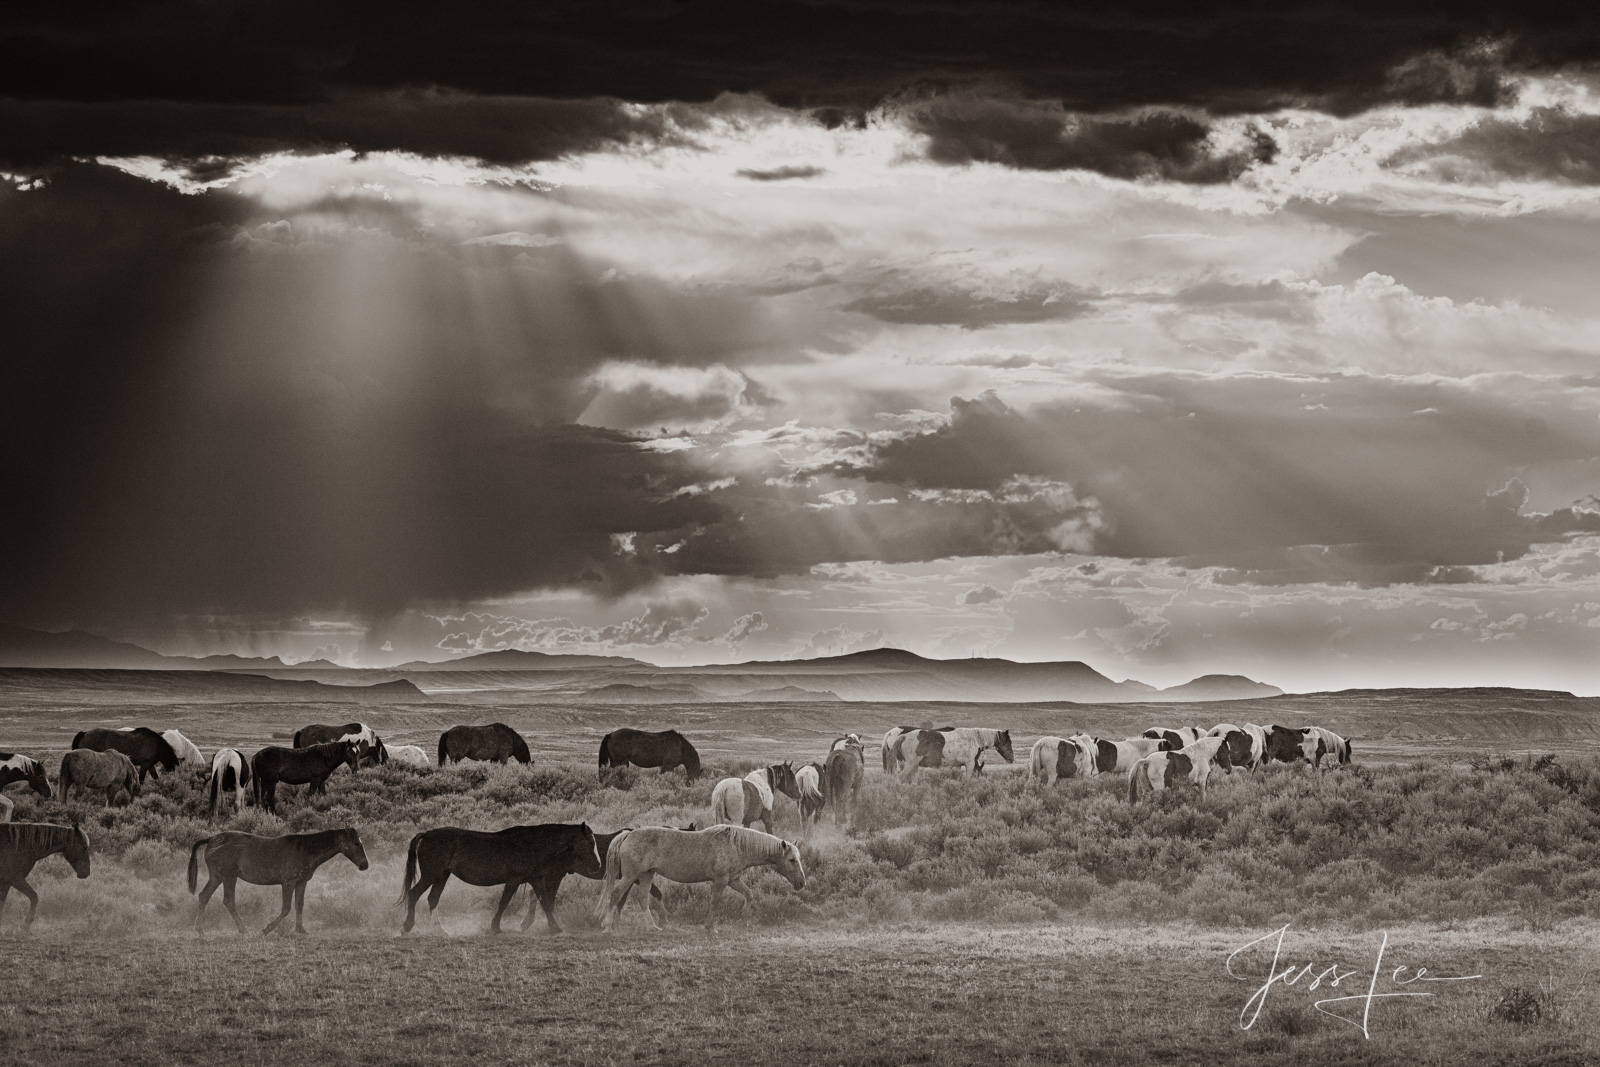 Wyoming Mustang herd on the move as an ominous storm rolls in.